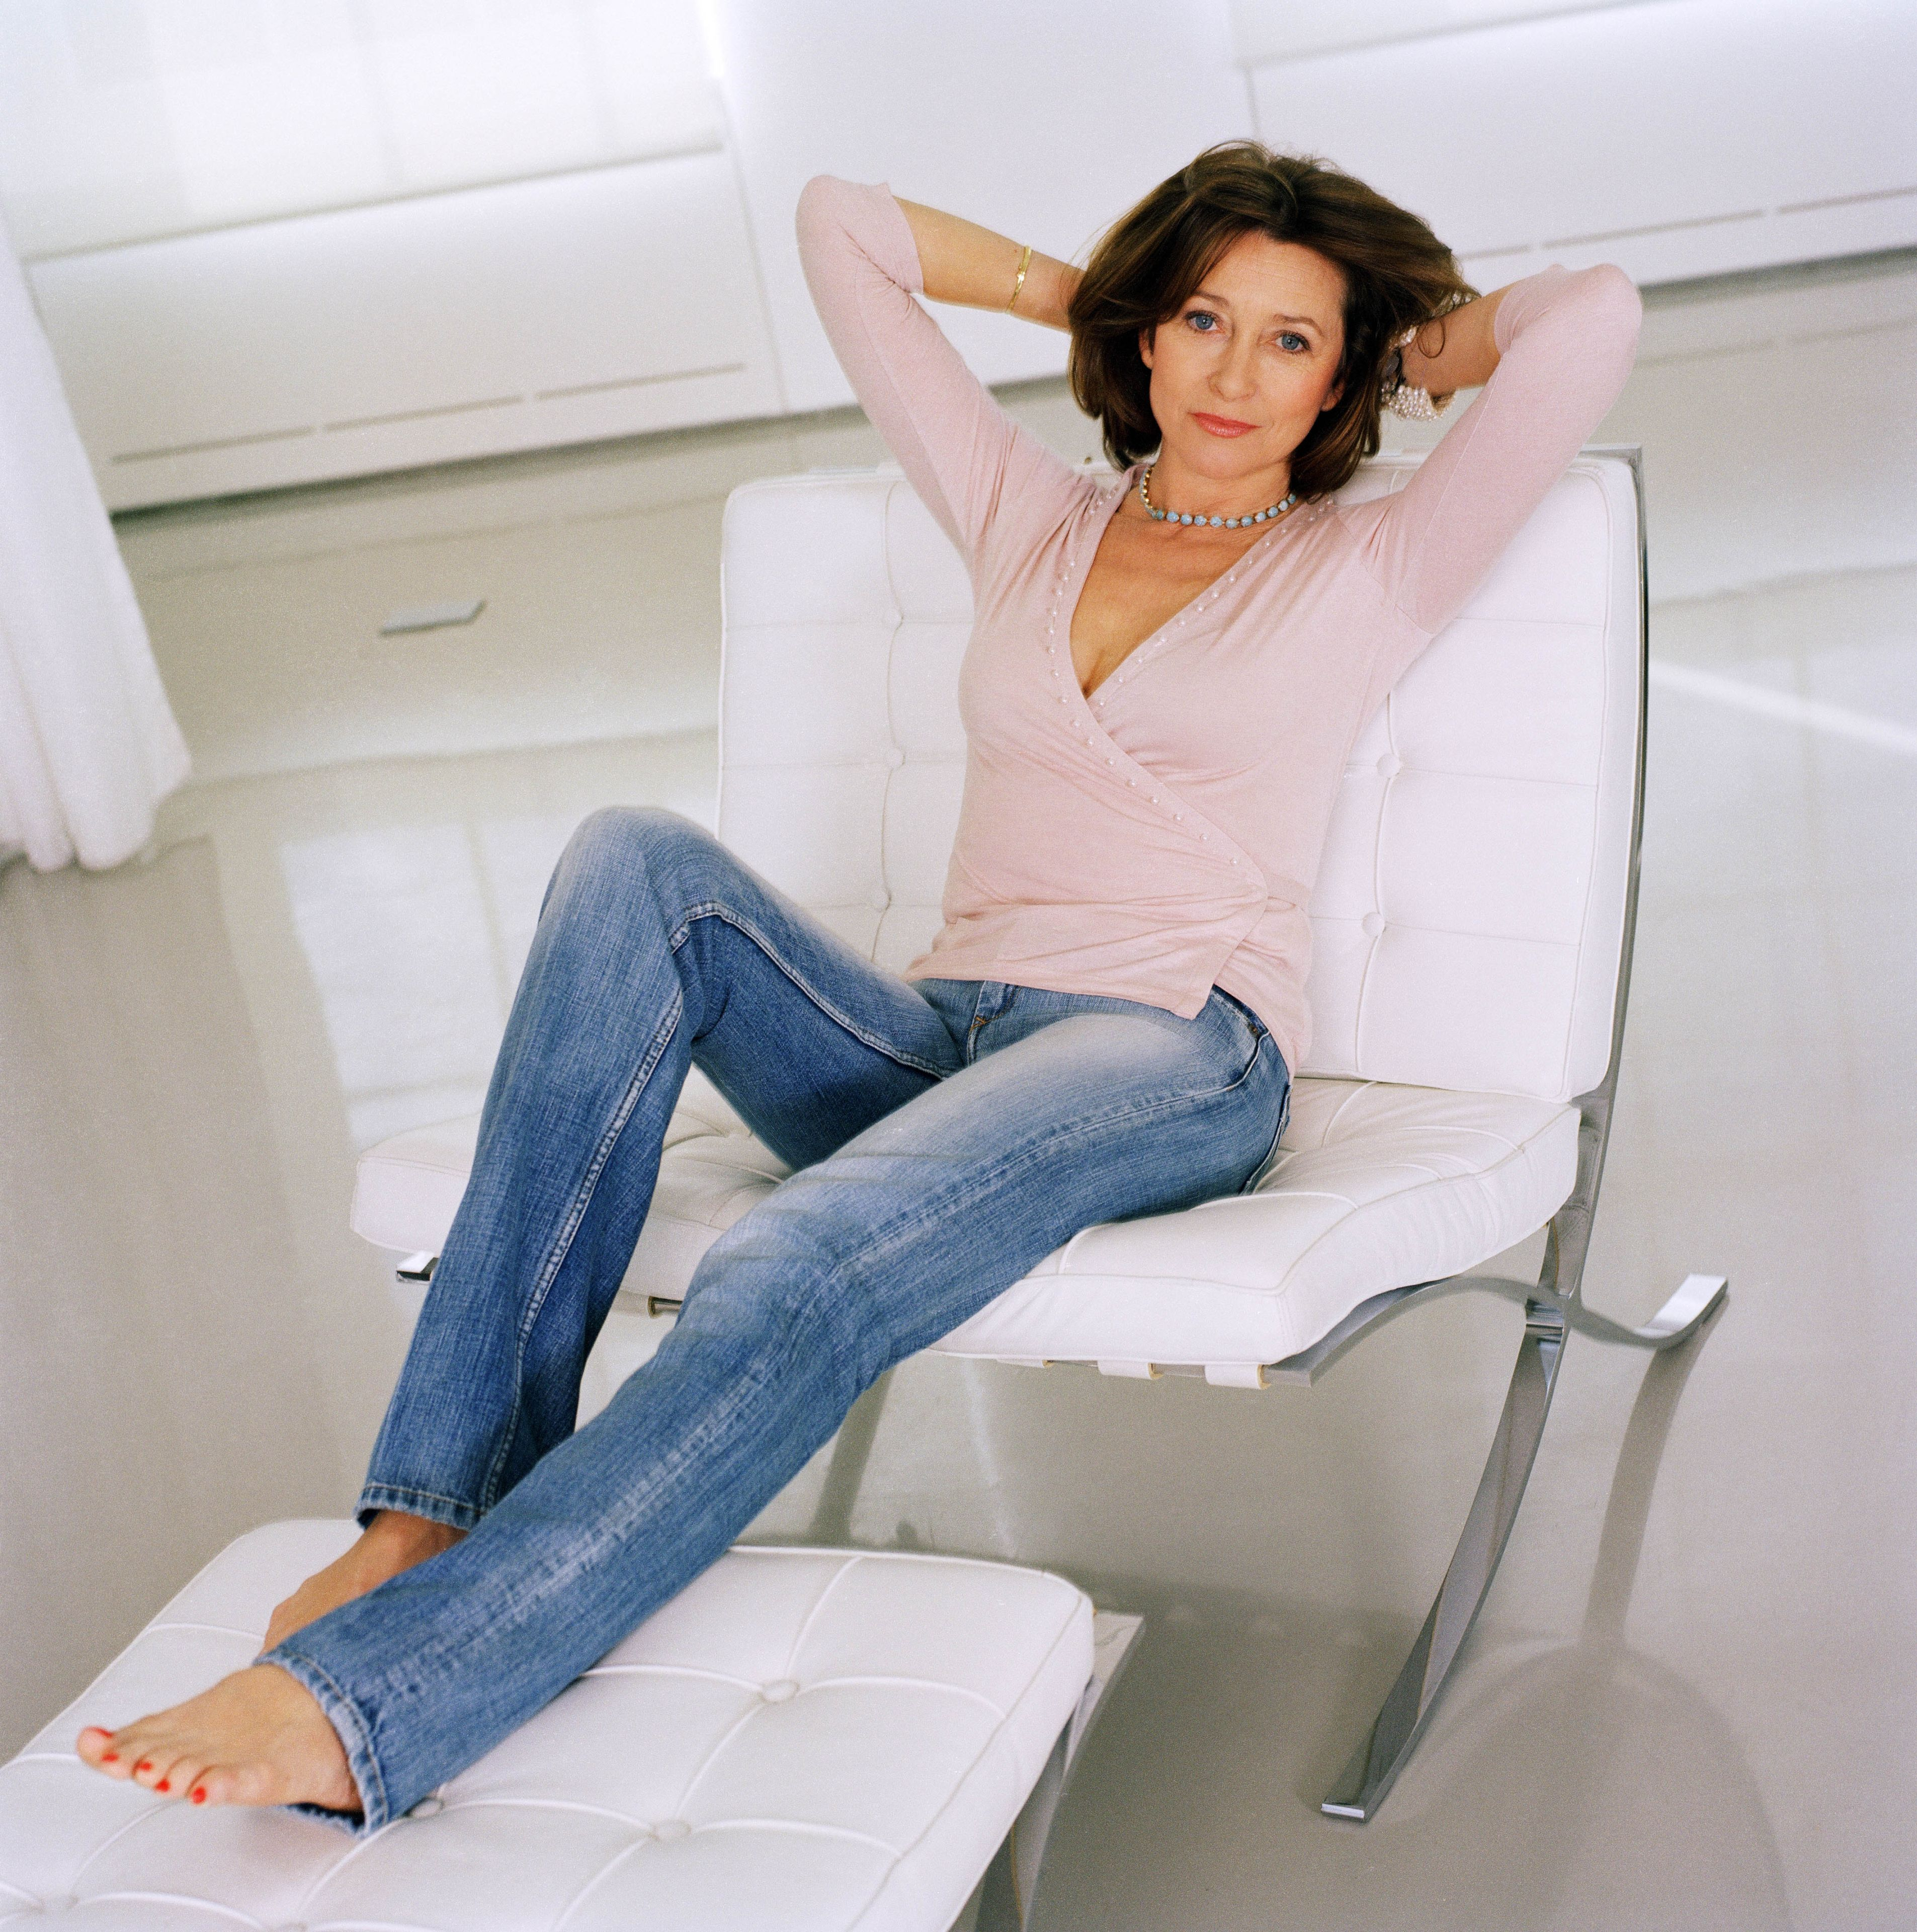 Cherie Lunghi's Feet (280353)